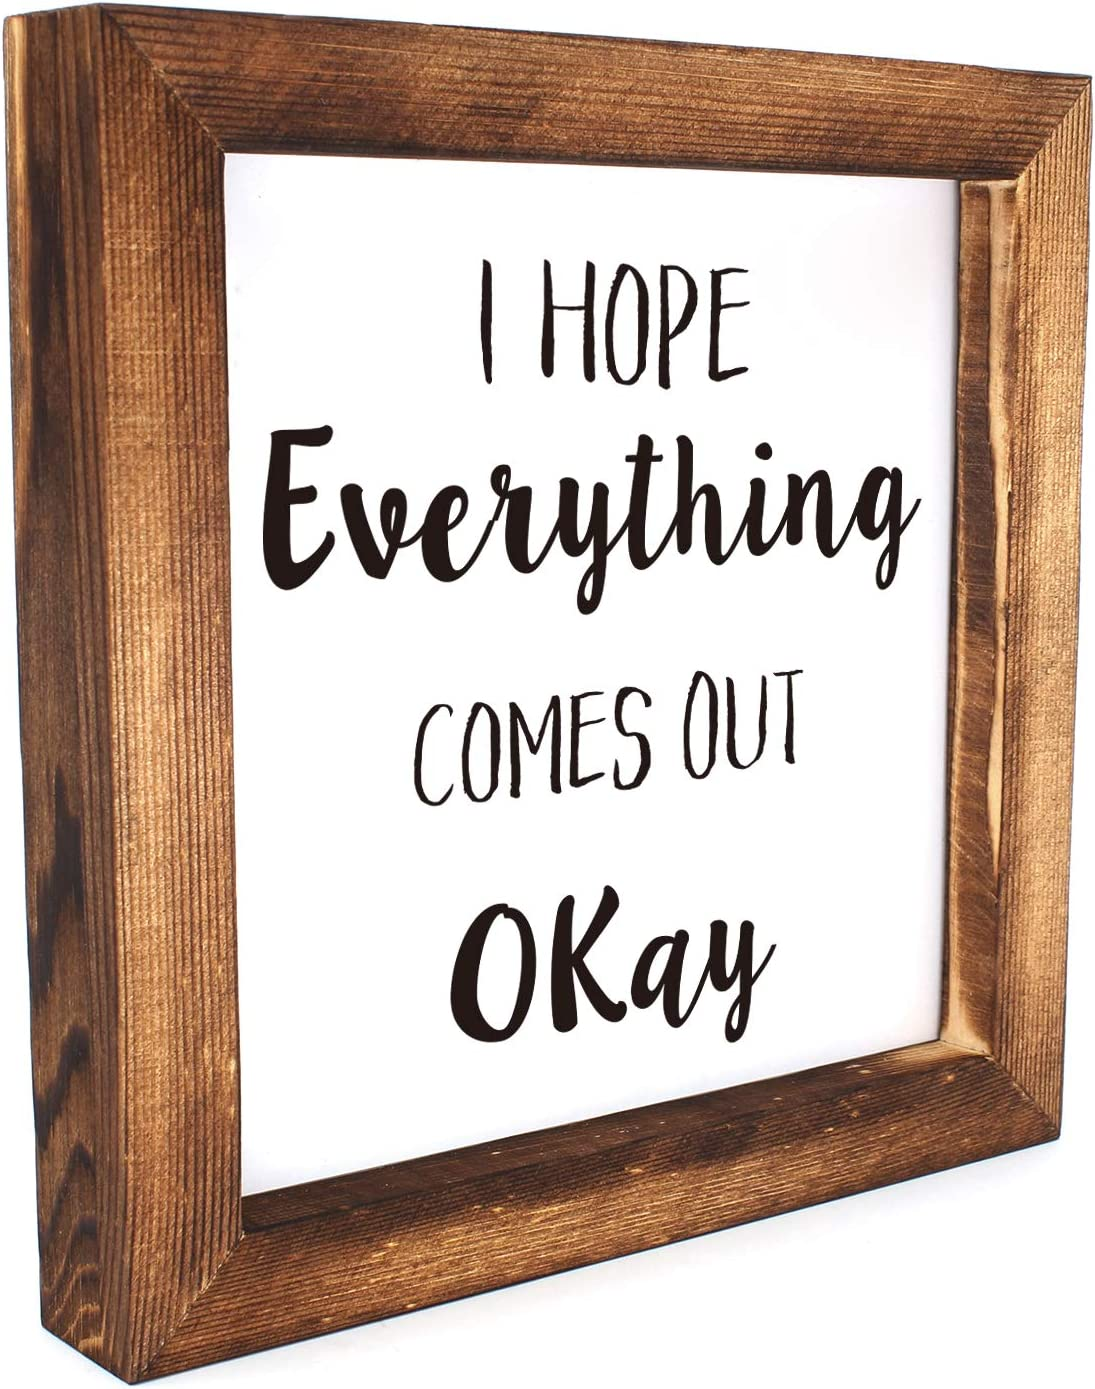 Ku-dayi I Hope Everything Comes Out Okay Restroom Framed Block Sign 8 x 8 inches Rustic Farmhouse Style Solid Wood Sign Art Standing On Shelf Table Friend Family Gift Idea.